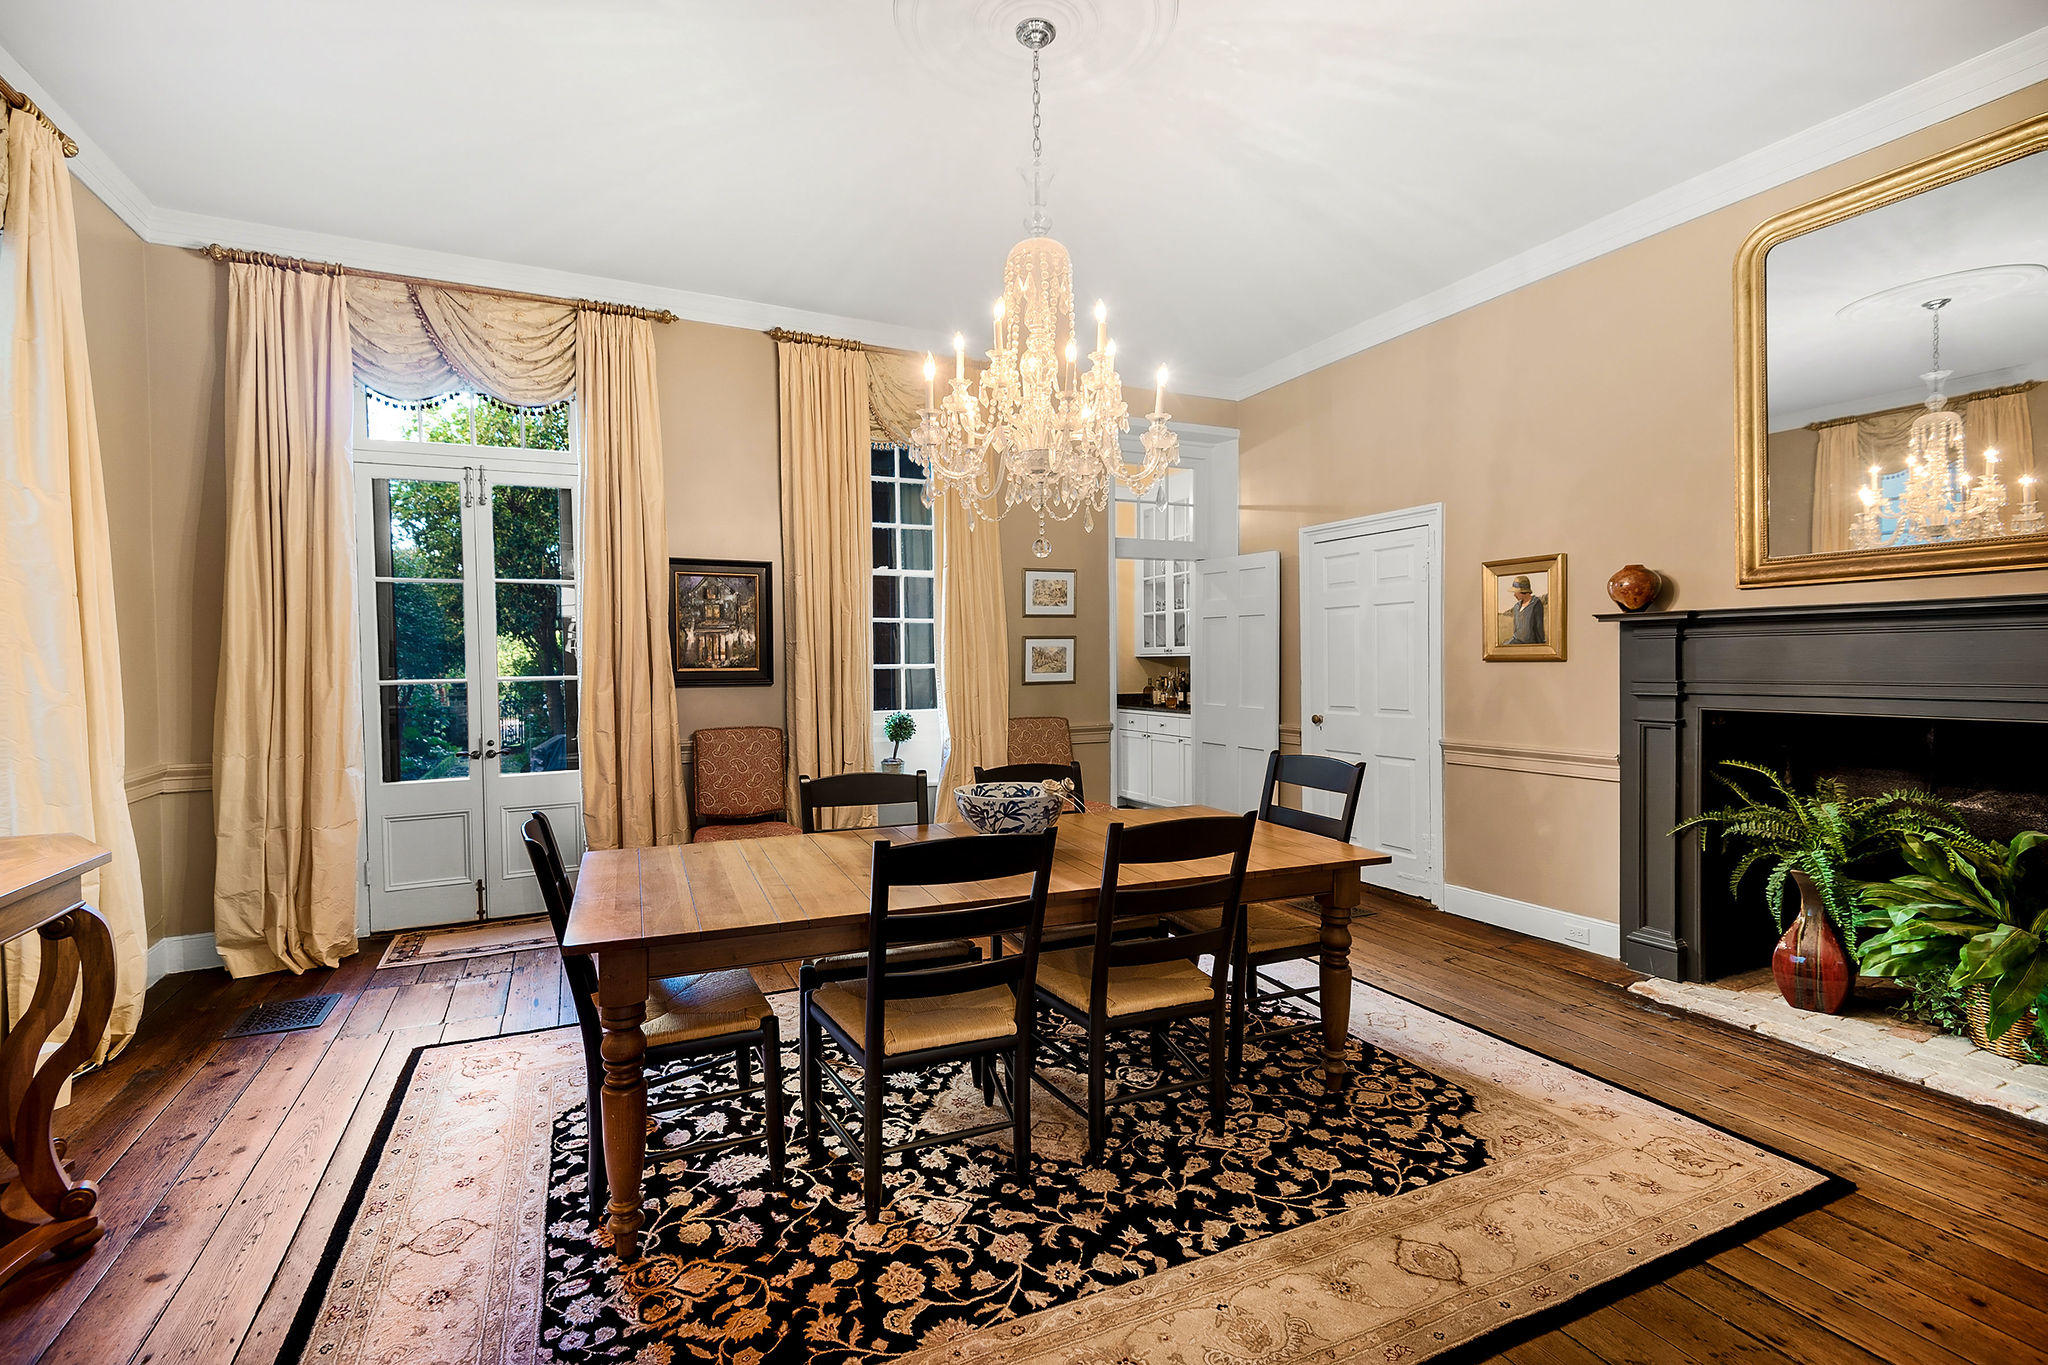 South of Broad Homes For Sale - 54 Tradd, Charleston, SC - 11